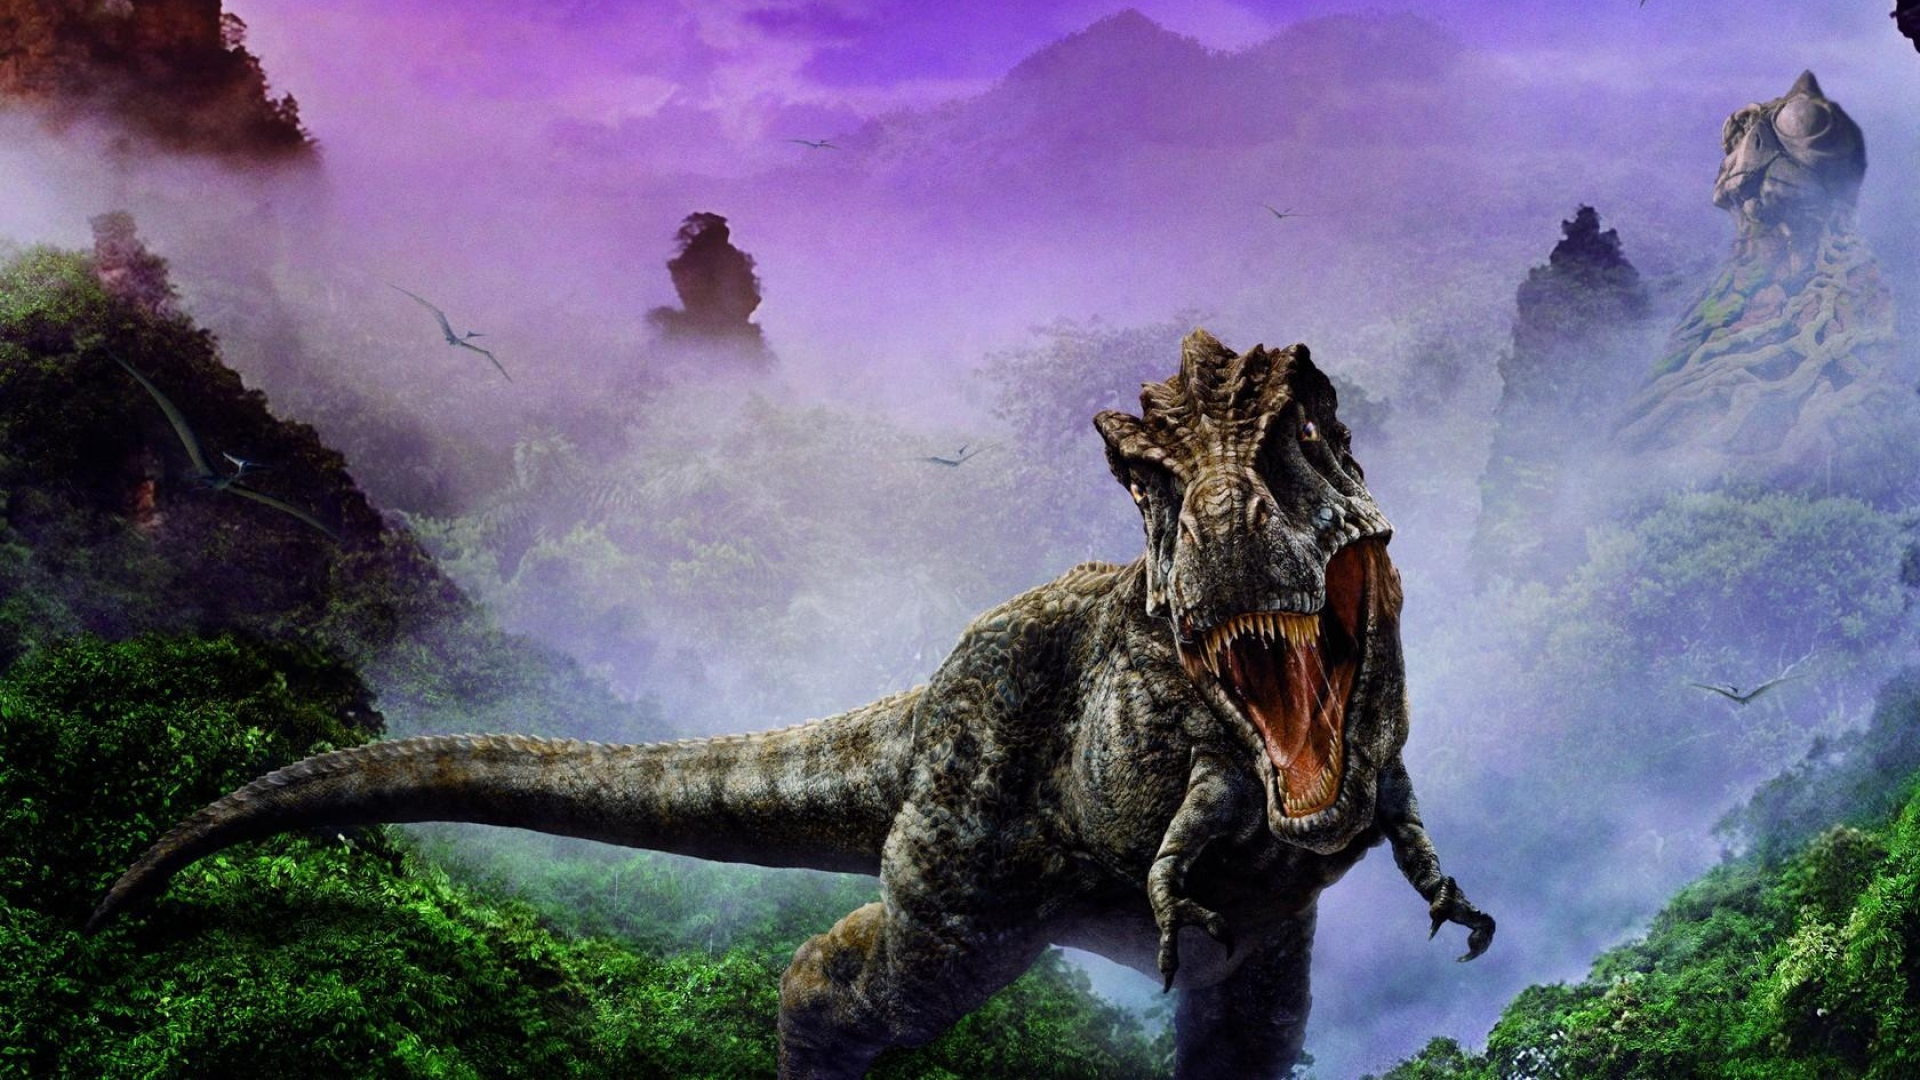 1920x1080 Wallpaper dinosaur, jaws, fangs, fog